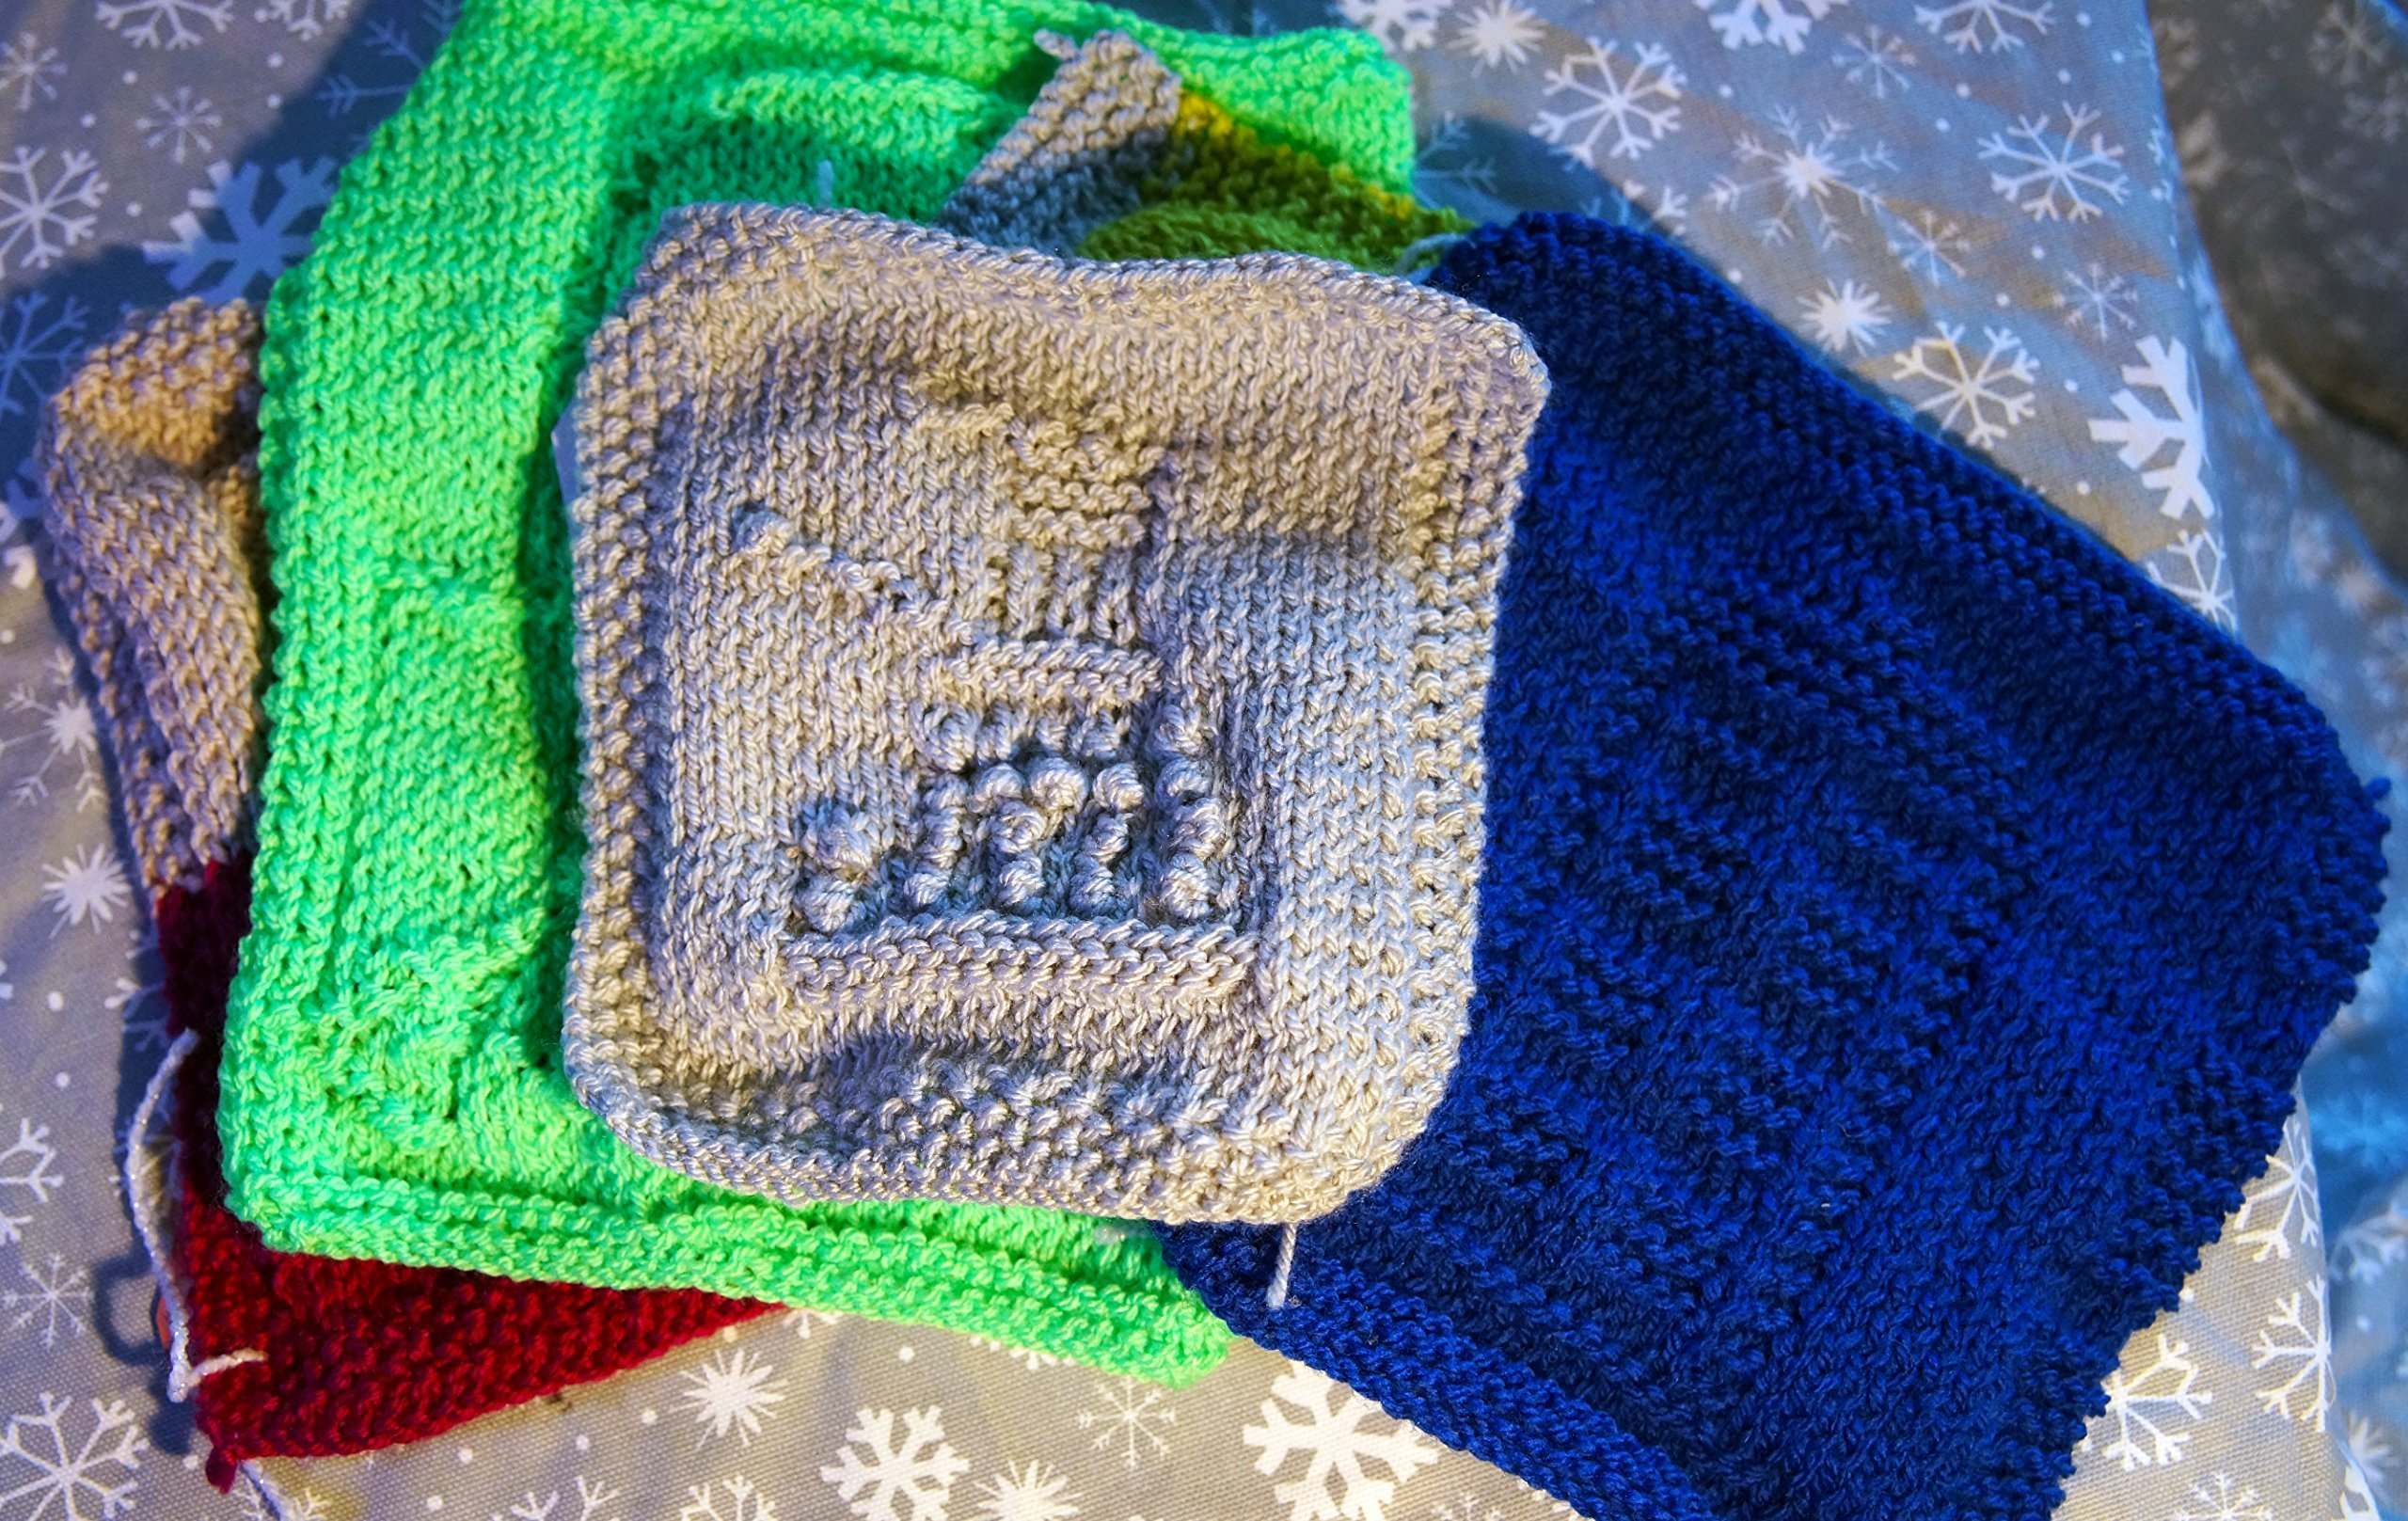 set of 5 washcloths various geeky designs by Crafty Snowflakes